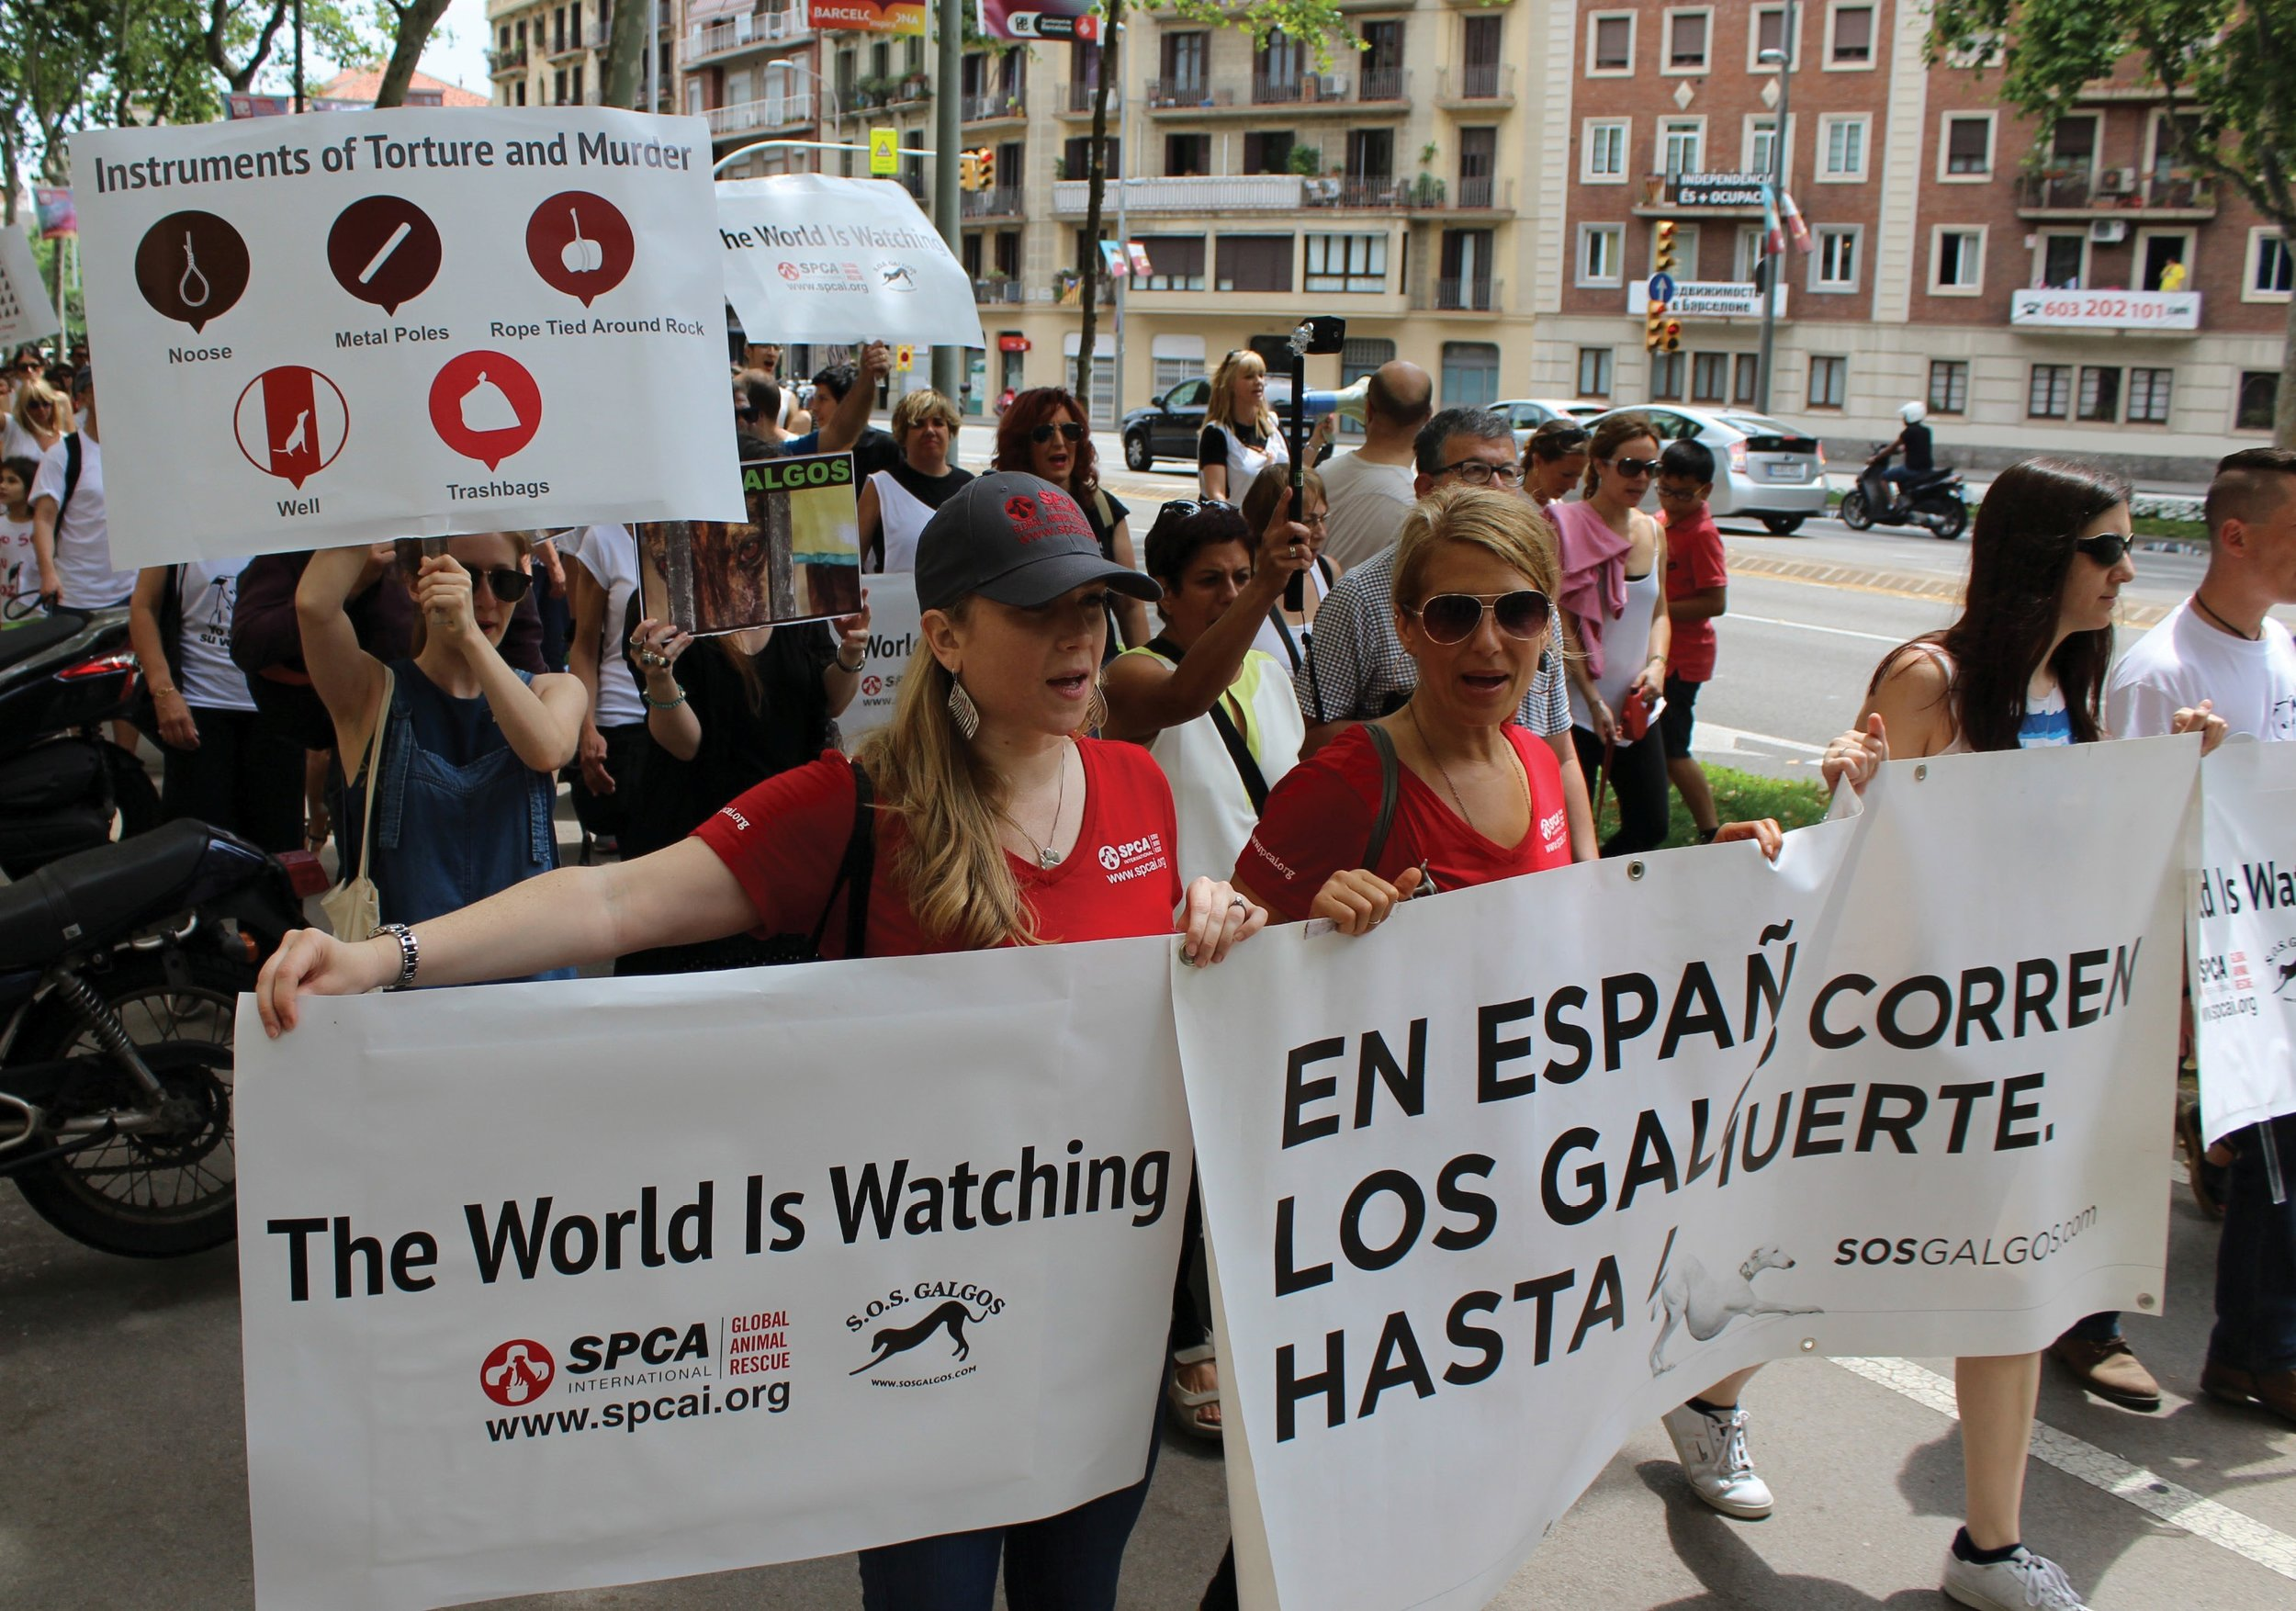 The SPCAI executive director and program manager march in a protest through the streets of Barcelona.